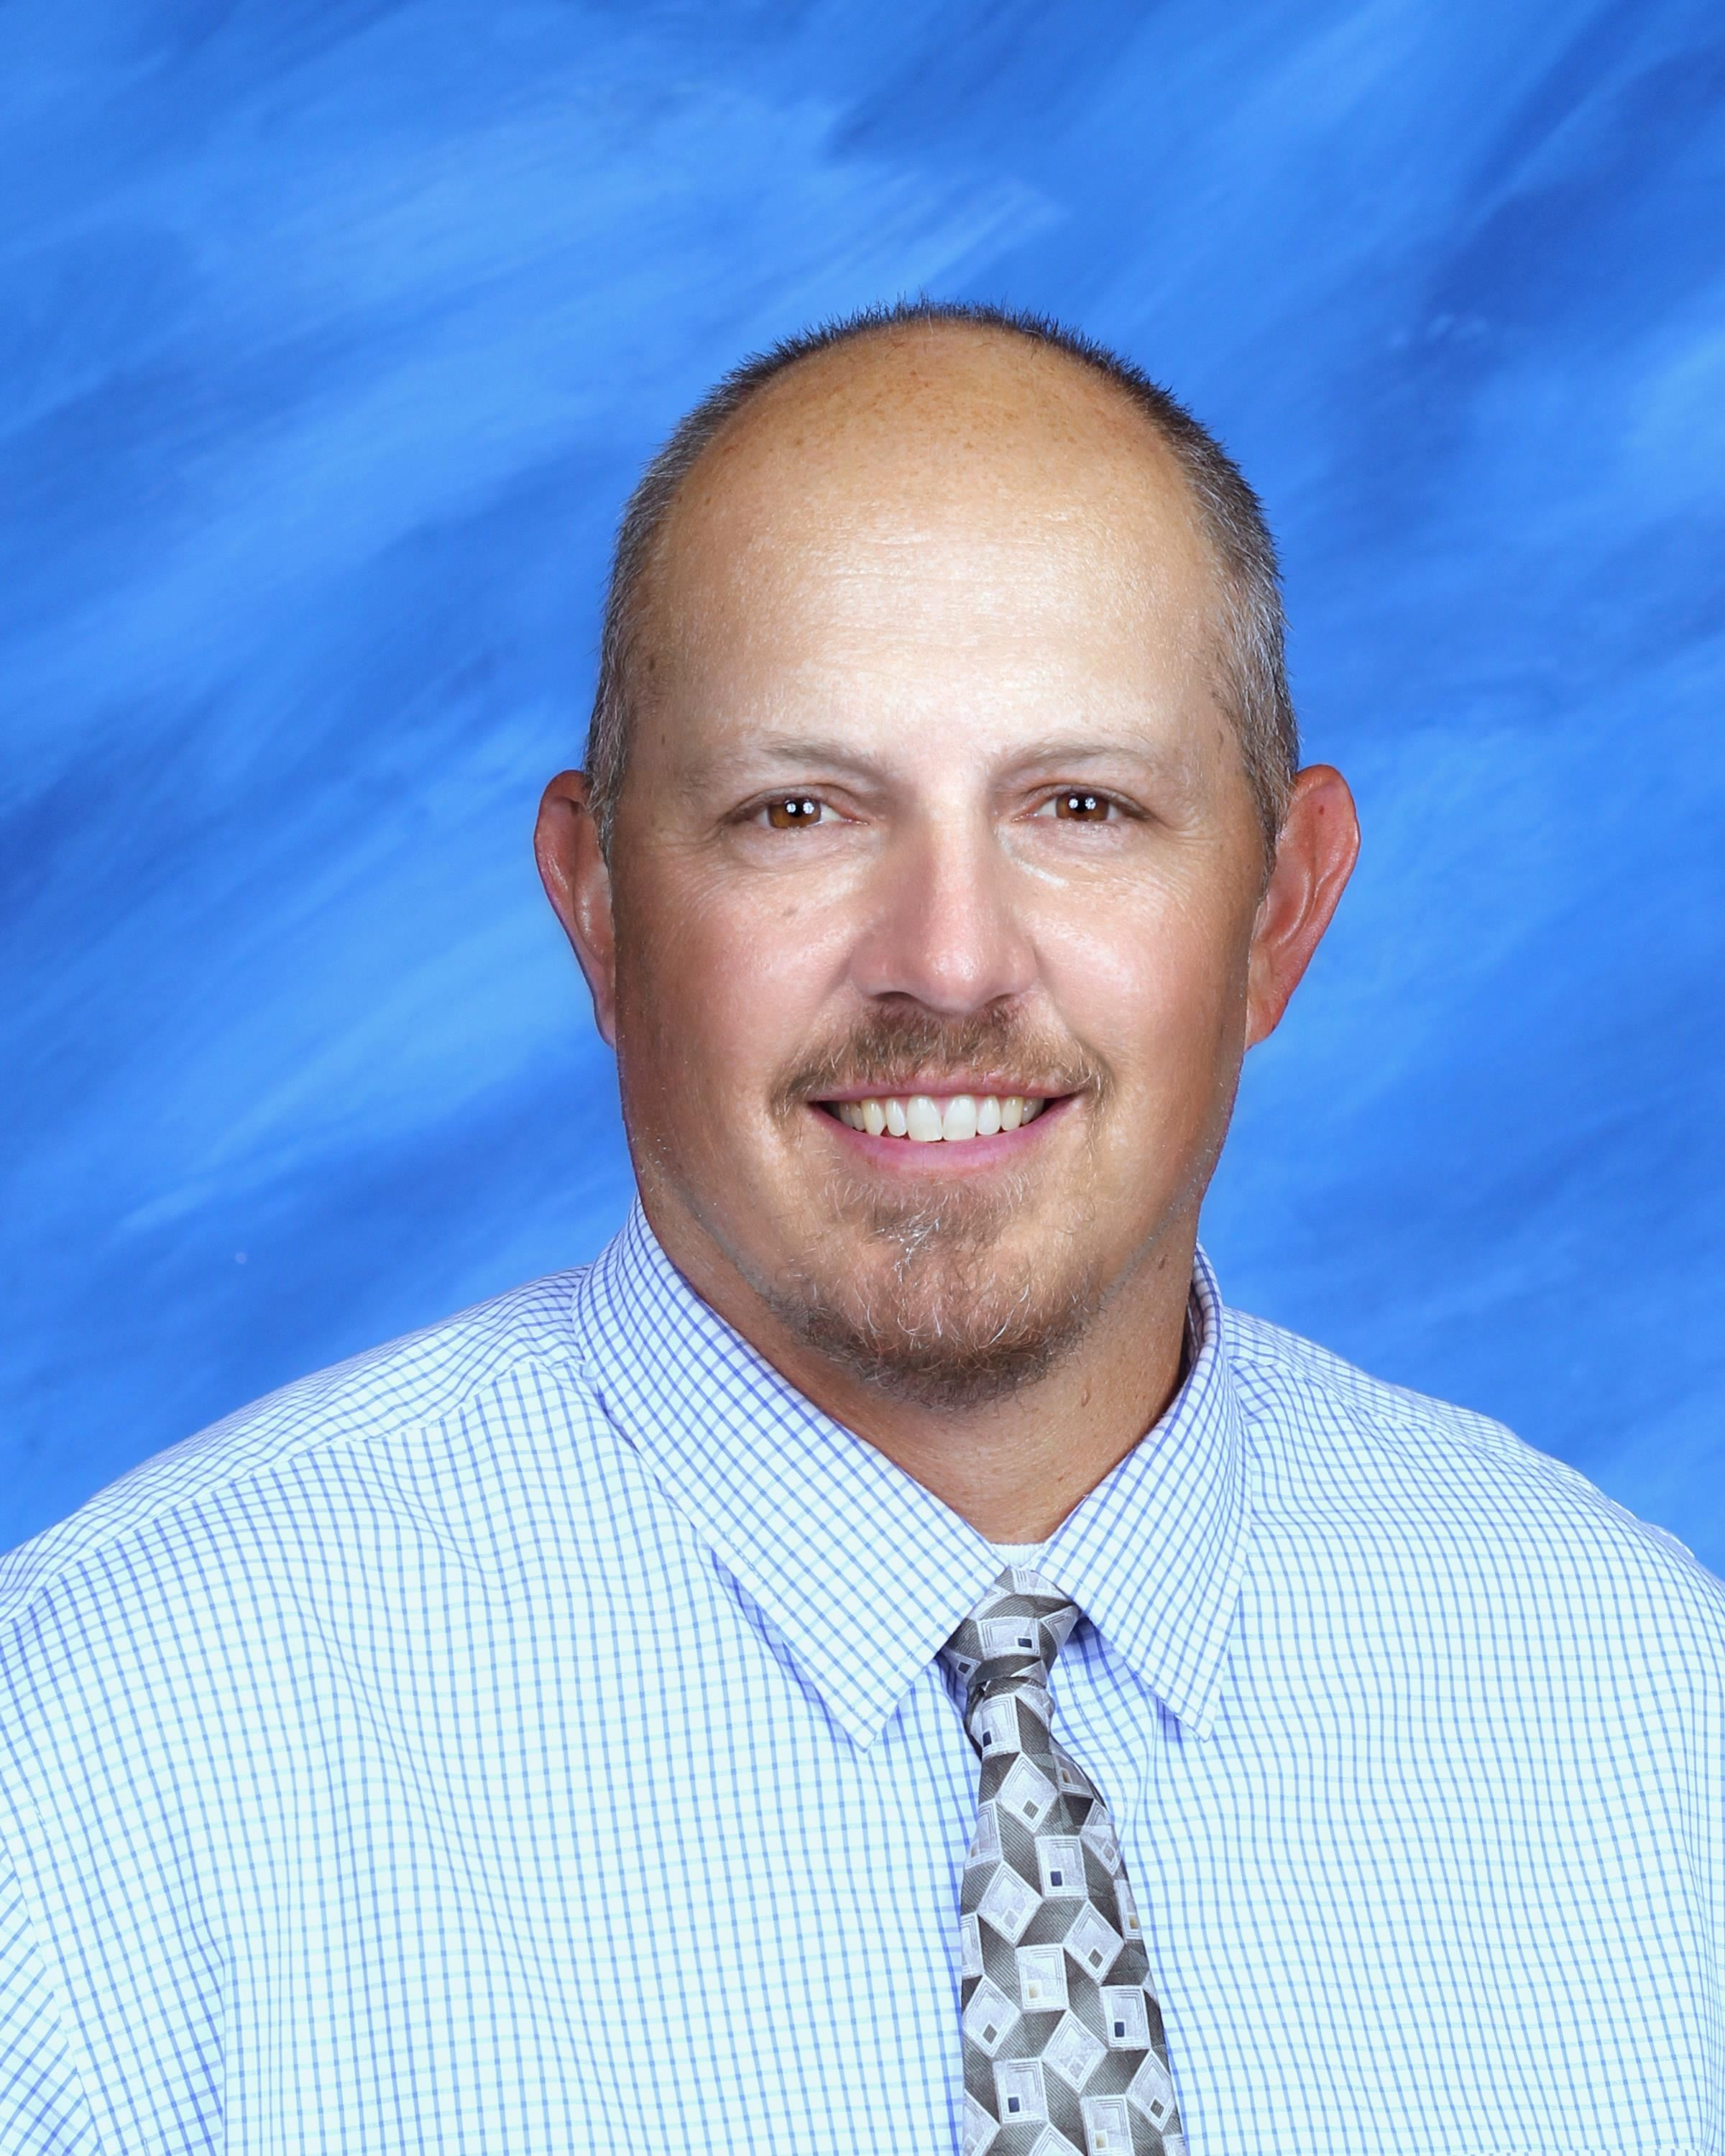 Jim Crosbie, Assistant Principal